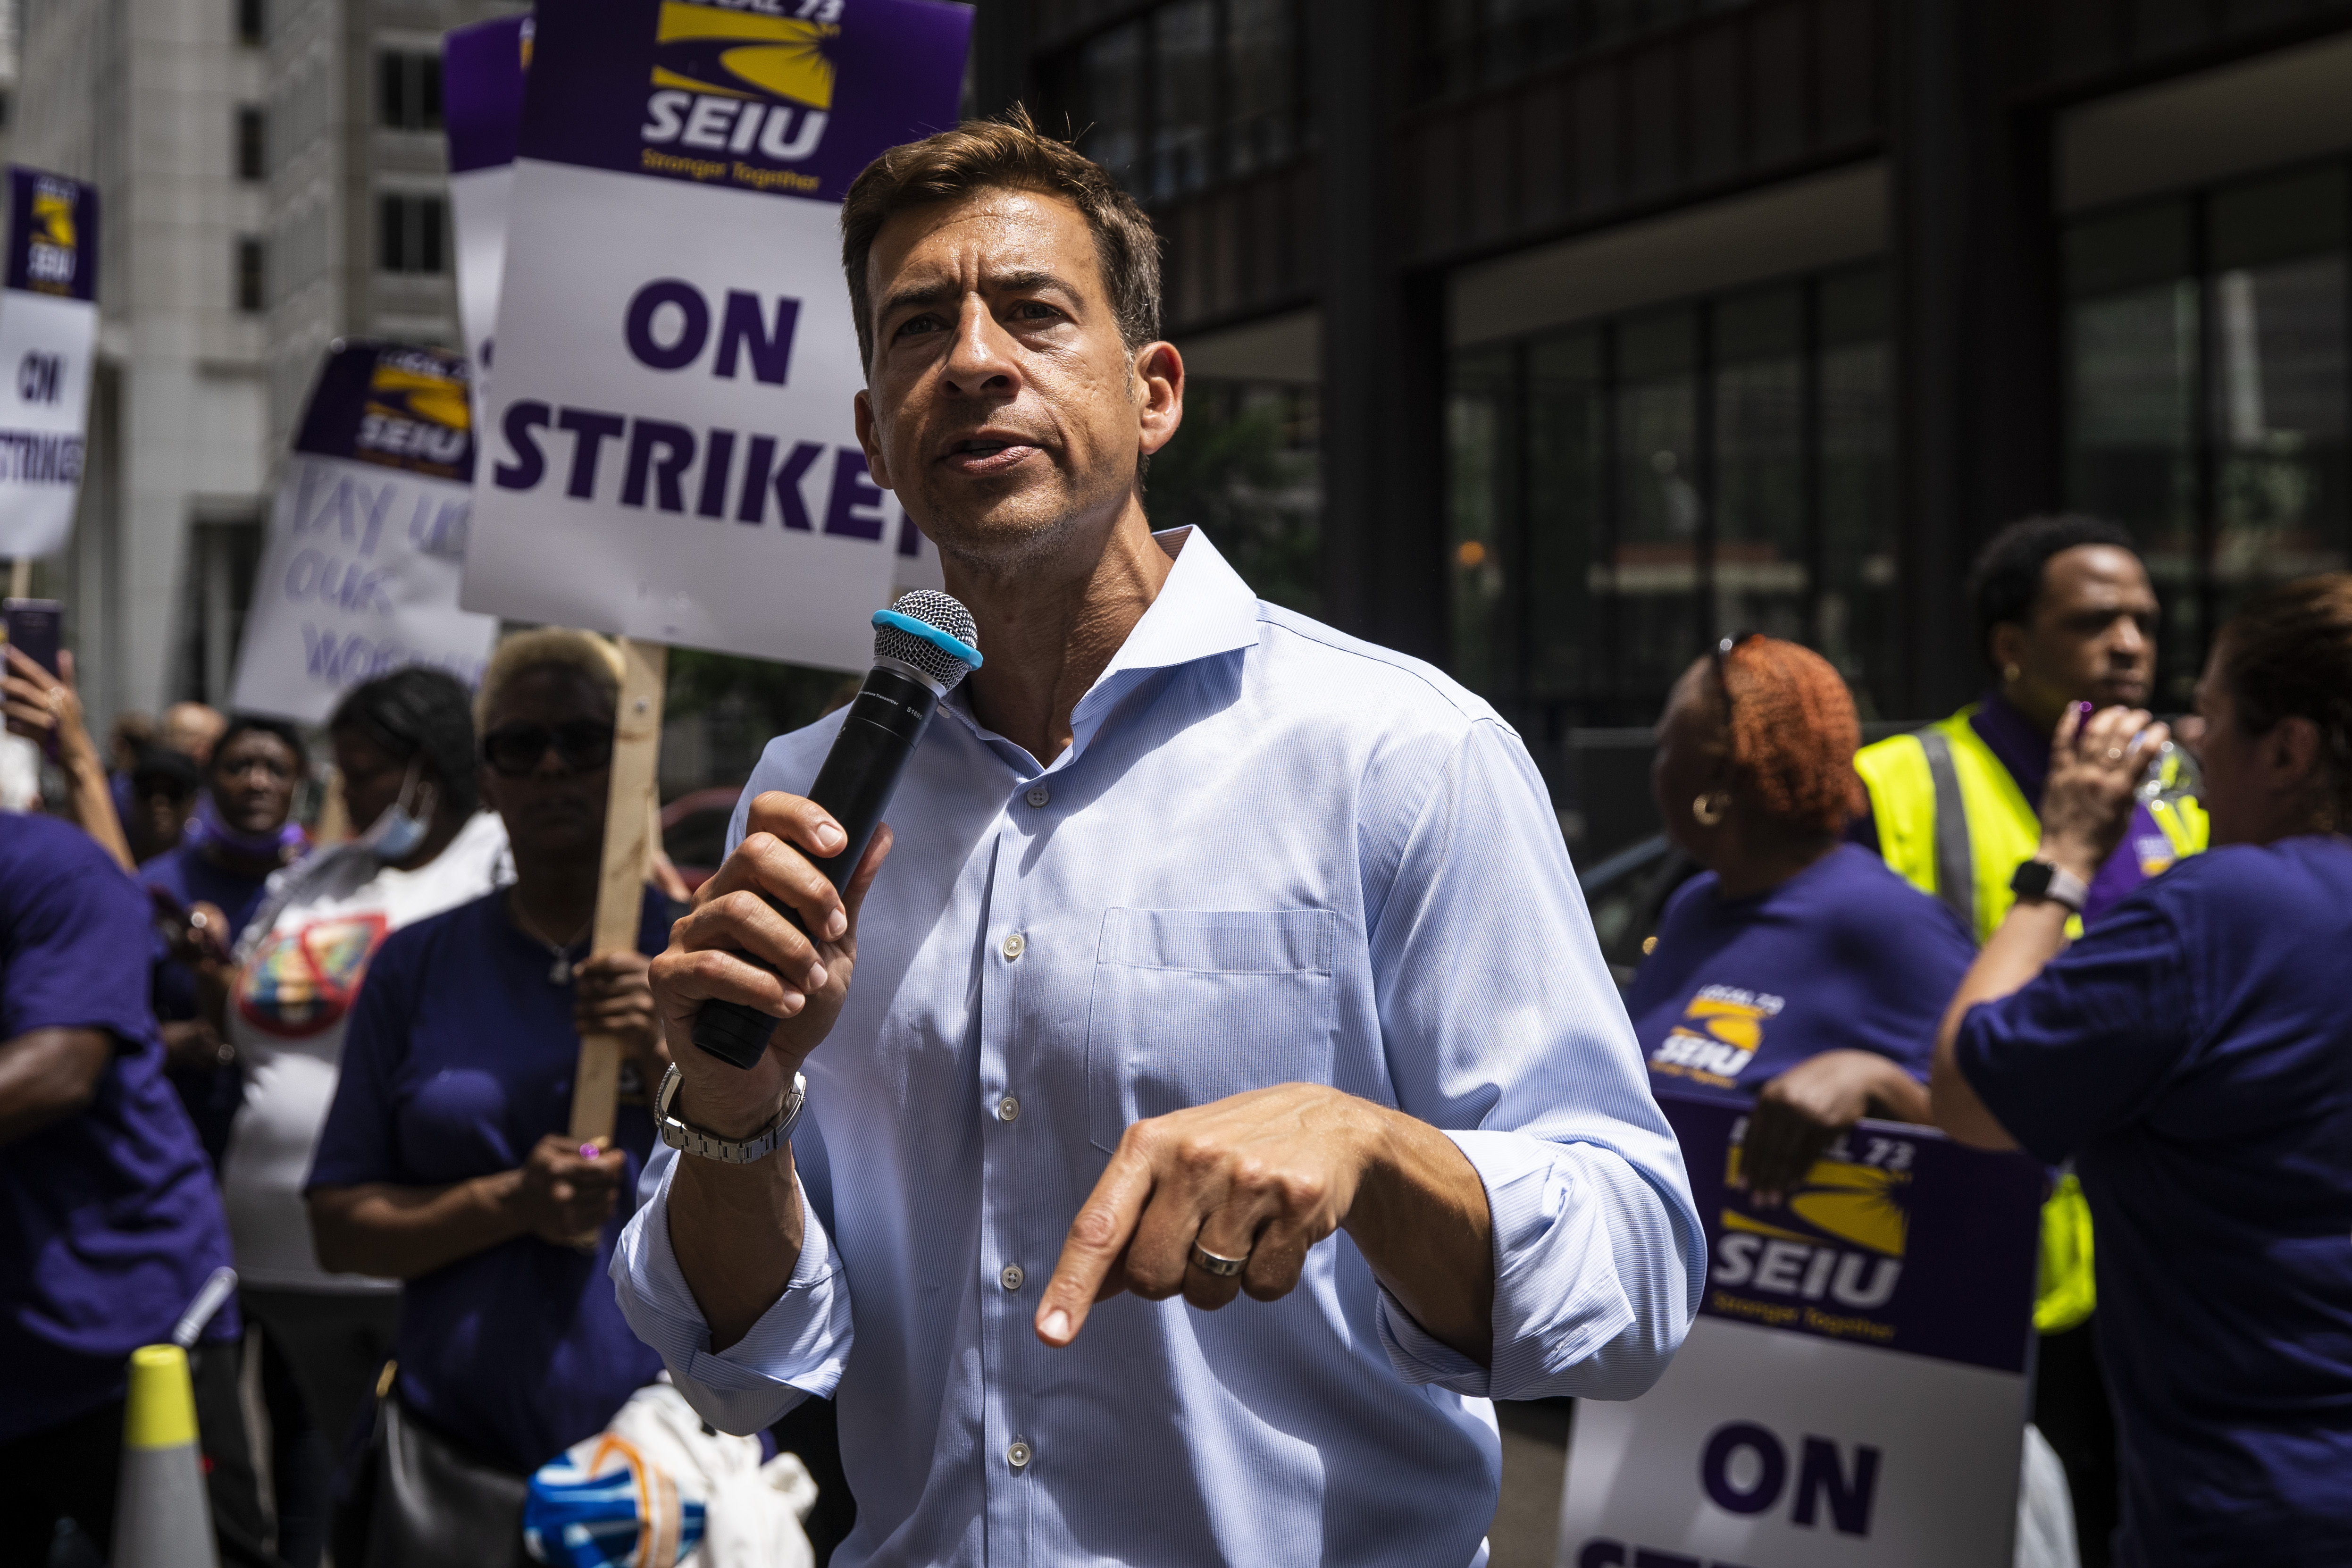 Democratic secretary of state candidate Alexi Giannoulias speaks to striking SEIU Local 73 Cook County workers rallying outside the Cook County Building at 118 N. Clark St. on Tuesday.